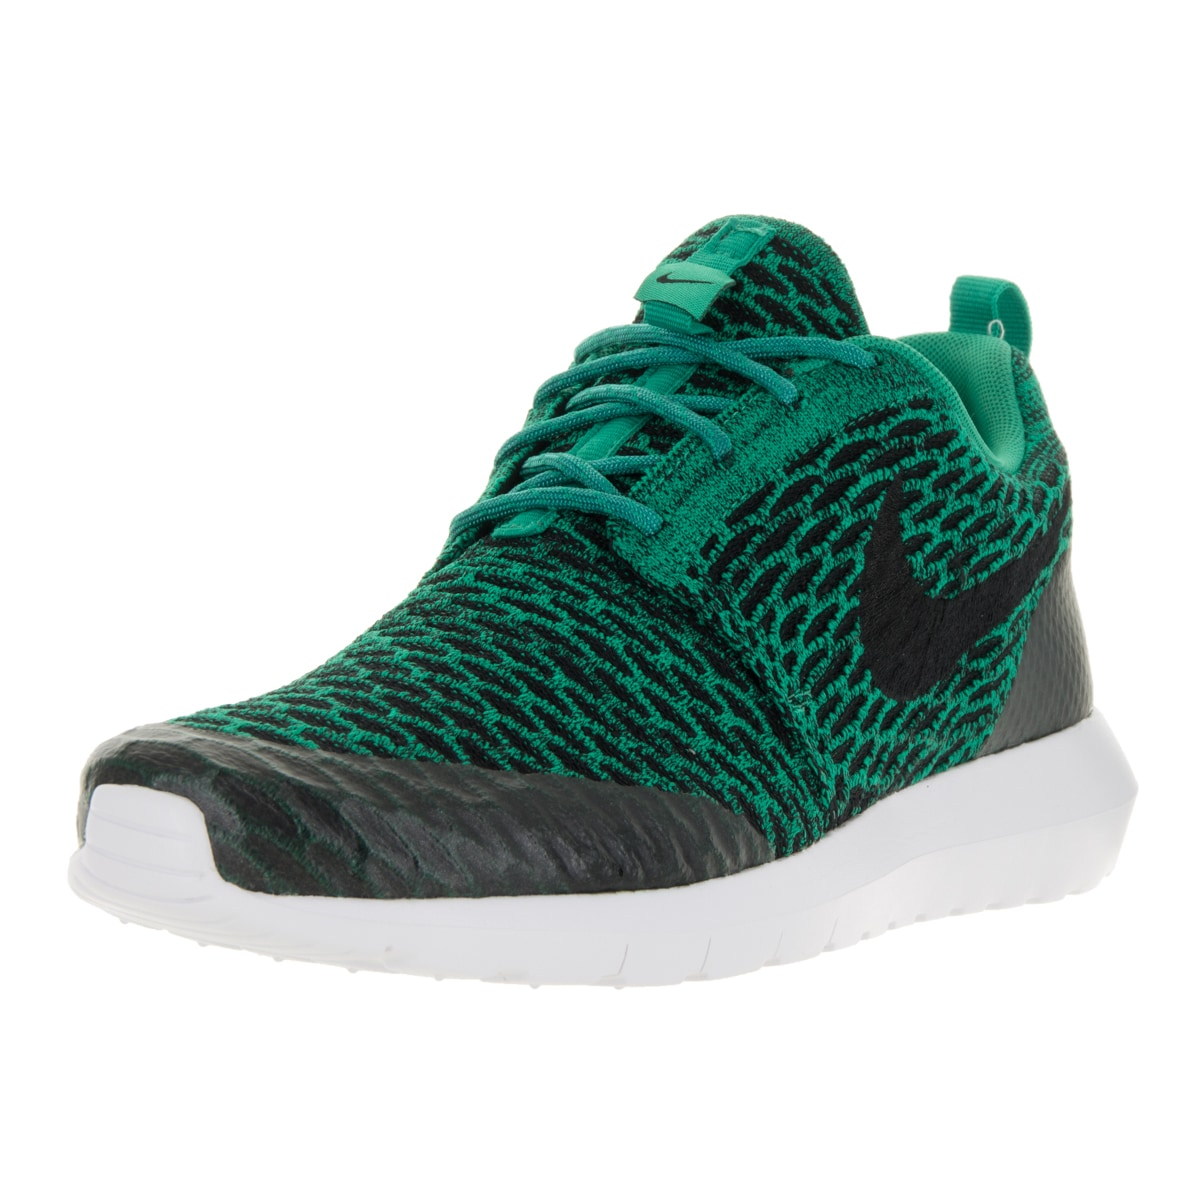 los angeles d66d5 ac24f Shop Nike Men s Roshe NM Flyknit SE Lucid Green Black White Running Shoe -  Free Shipping Today - Overstock - 13394785